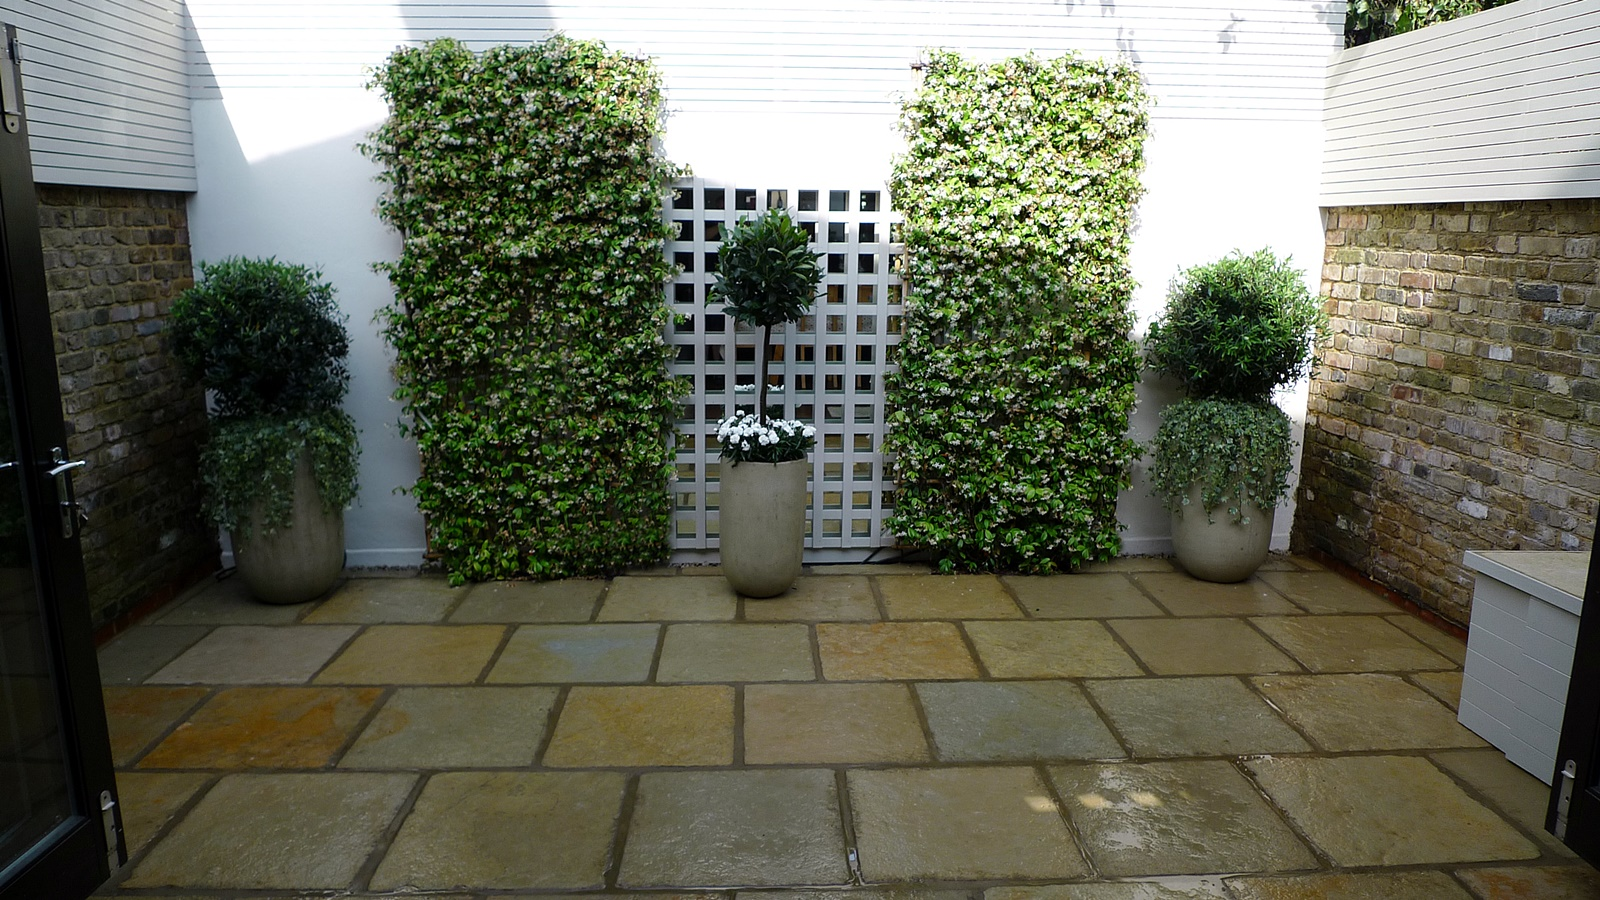 Garden Design Minimalist : Courtyard minimalist contemporary garden design and designer belgravia ...